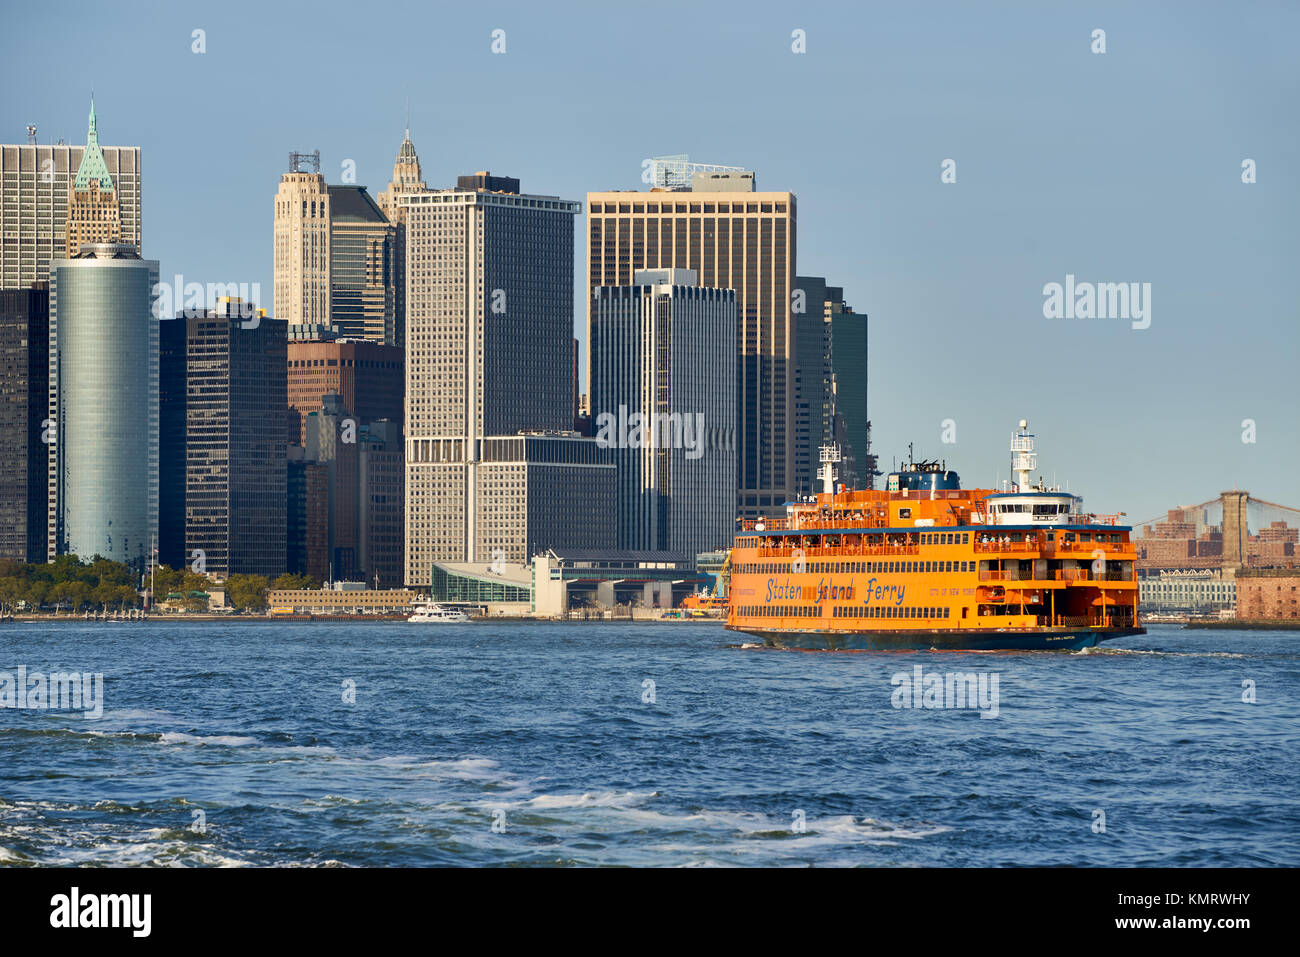 Financial District skyscrapers and the Staten Island Ferry. Lower Manhattan, New York City Harbor - Stock Image